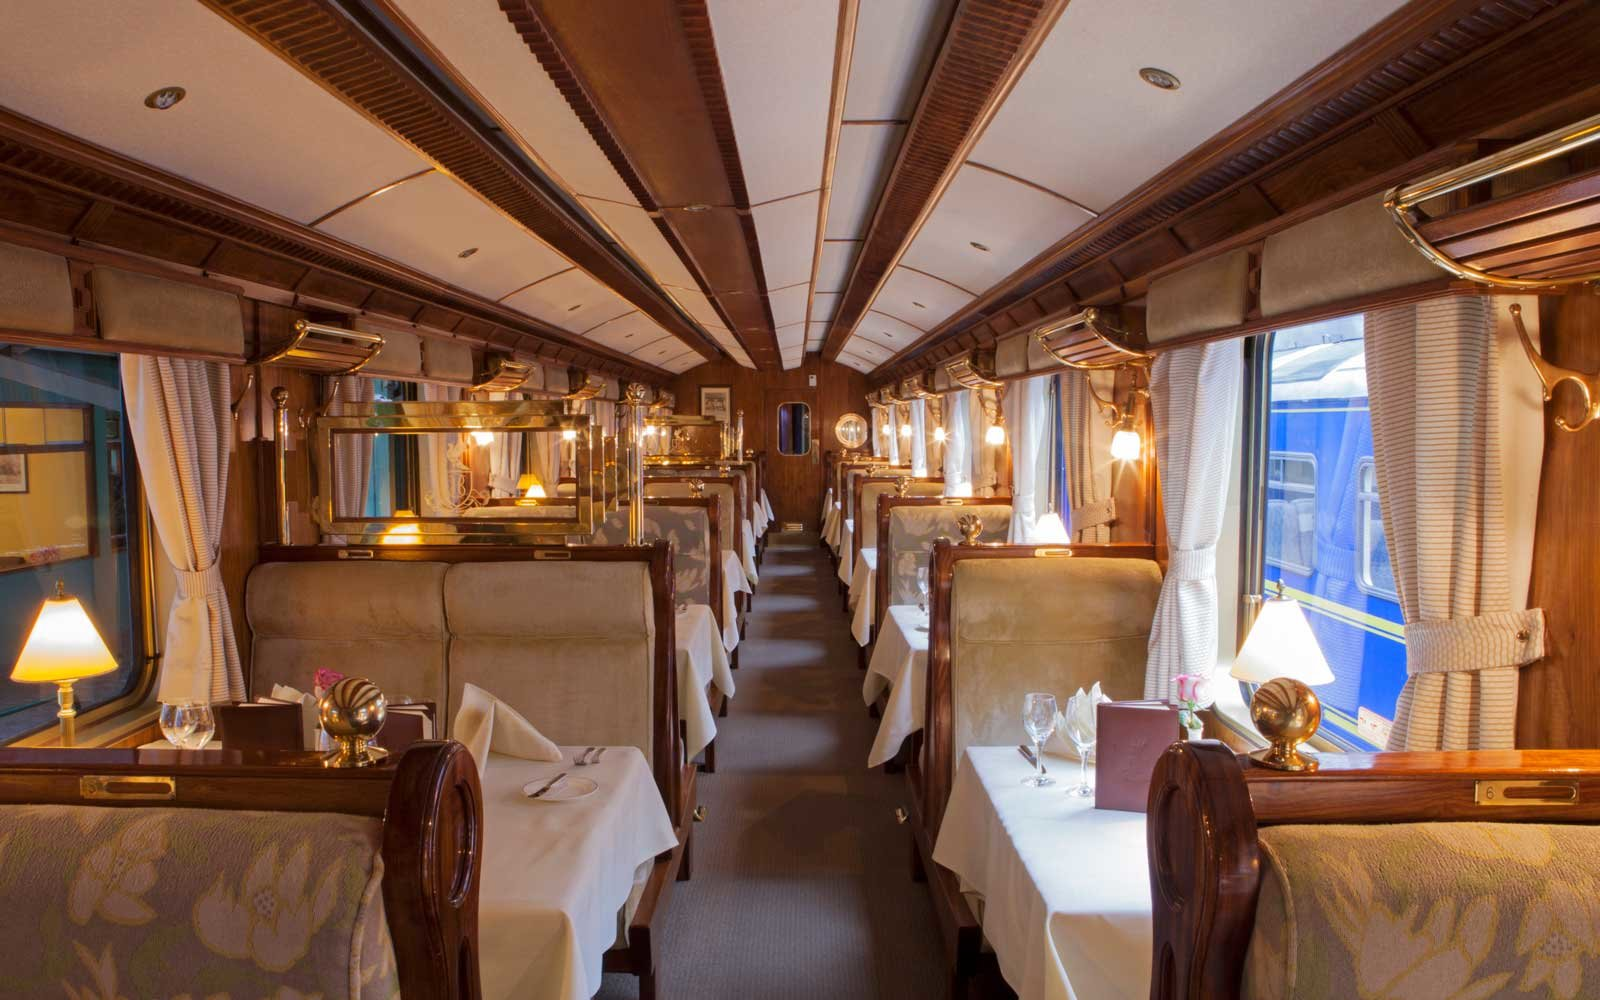 The dining car with tables set for dinner on the Orient-Express Hiram Bingham train which runs between Cusco (Poroy) and Machu Picchu via Ollantaytambo